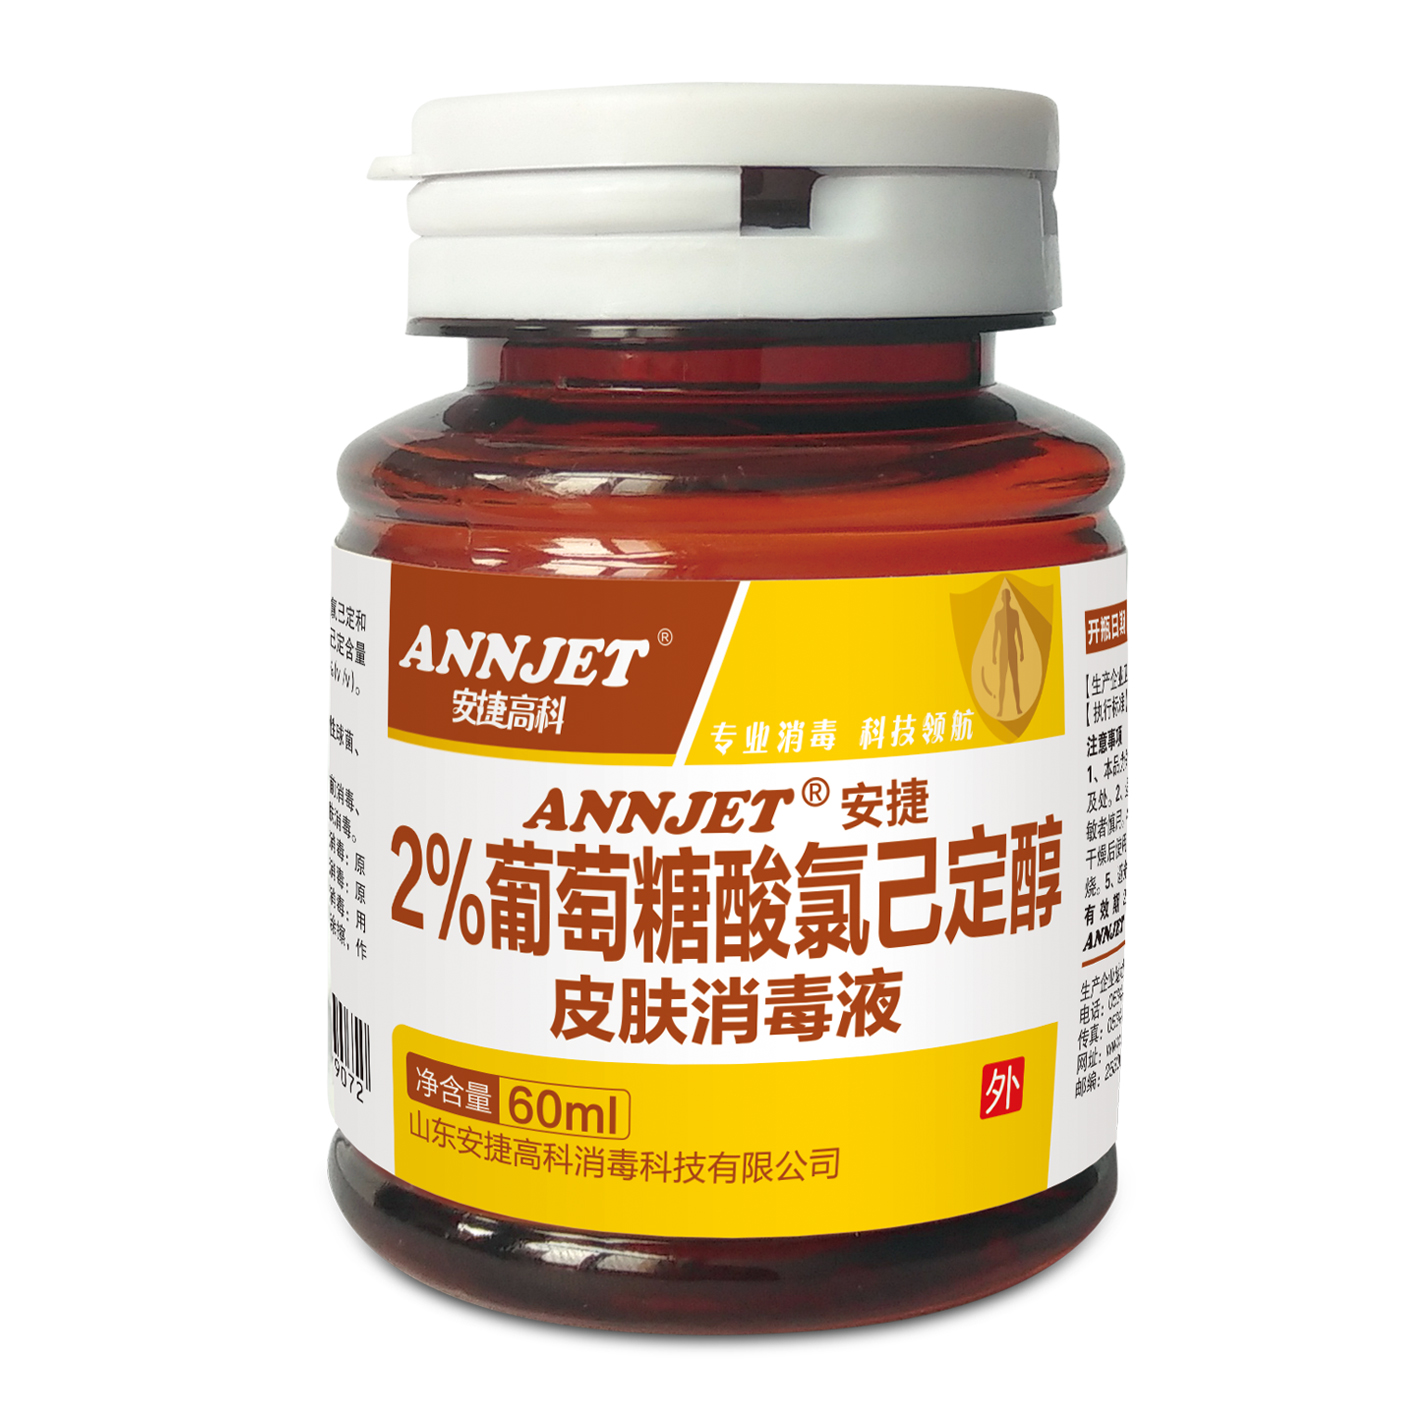 ANNJET 2% chlorhexidine gluconate alcohol skin disinfectant